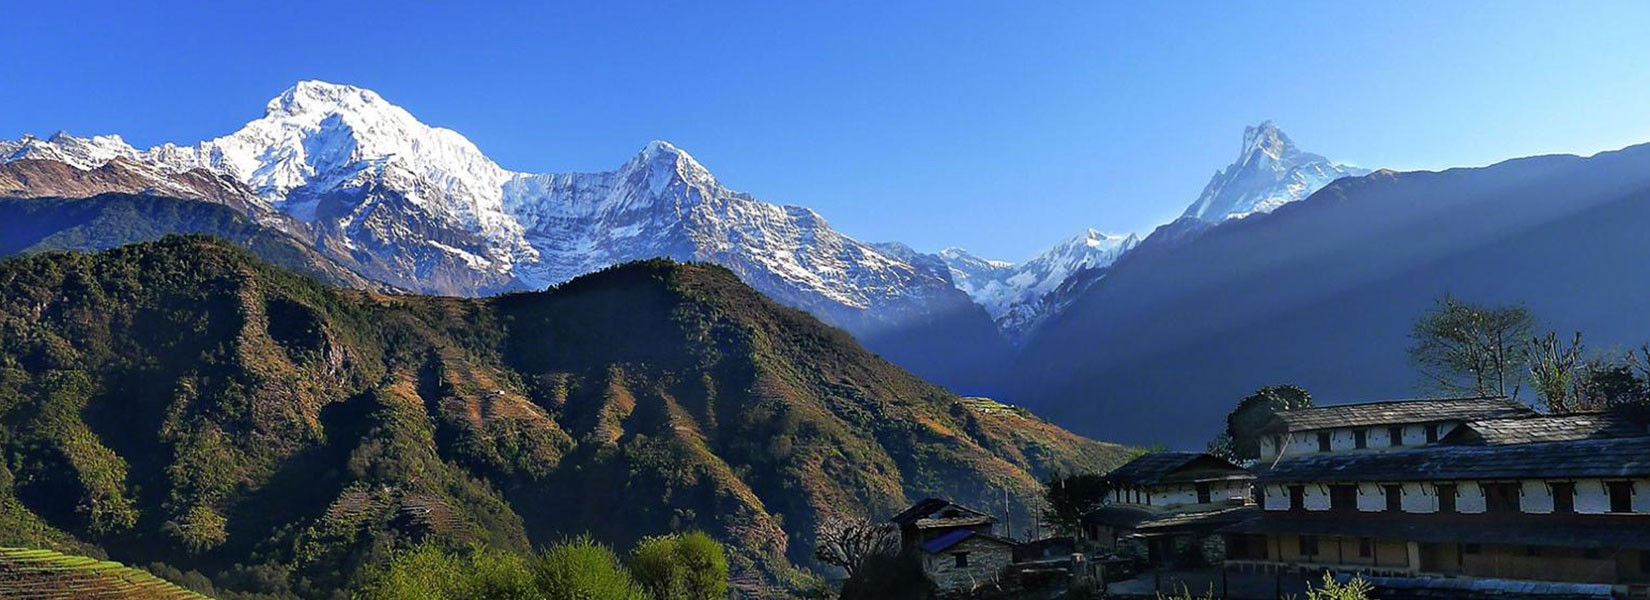 Teahouses In The Annapurna Region; Things You Need To Know